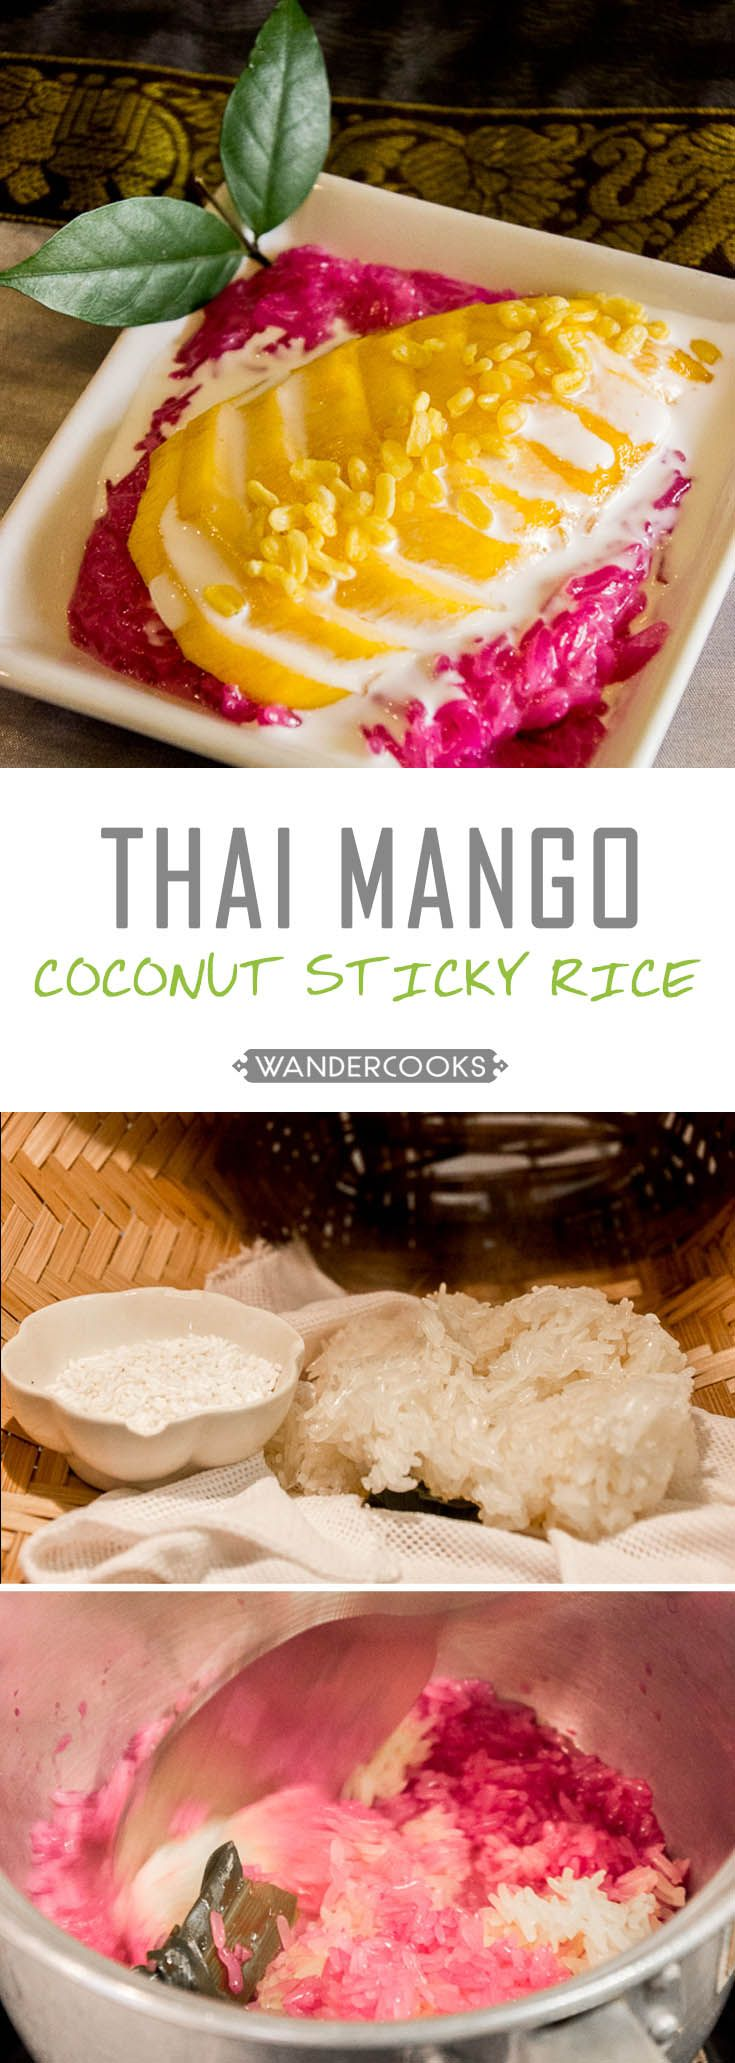 Mango Coconut Sticky Rice - Pretty in pink! This EASY dessert is the perfect accomplice to your next party. Just don't eat it all before you arrive. Mmm sticky rice. Vegetarian | wandercooks.com